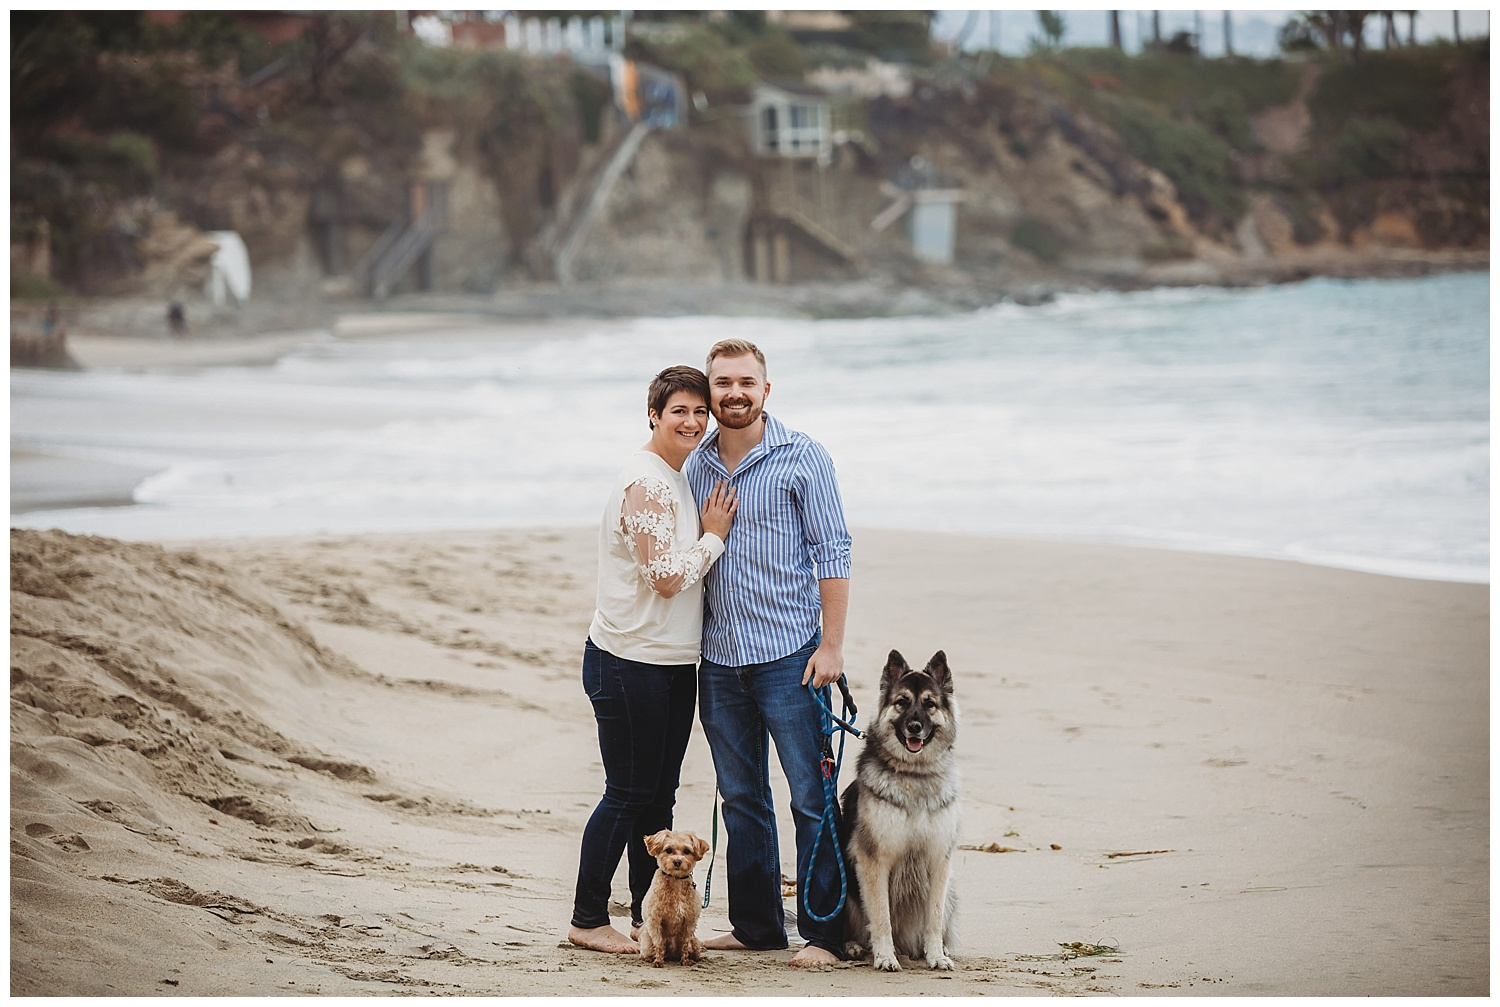 Laguna Beach Family Photo session with Dogs.jpg